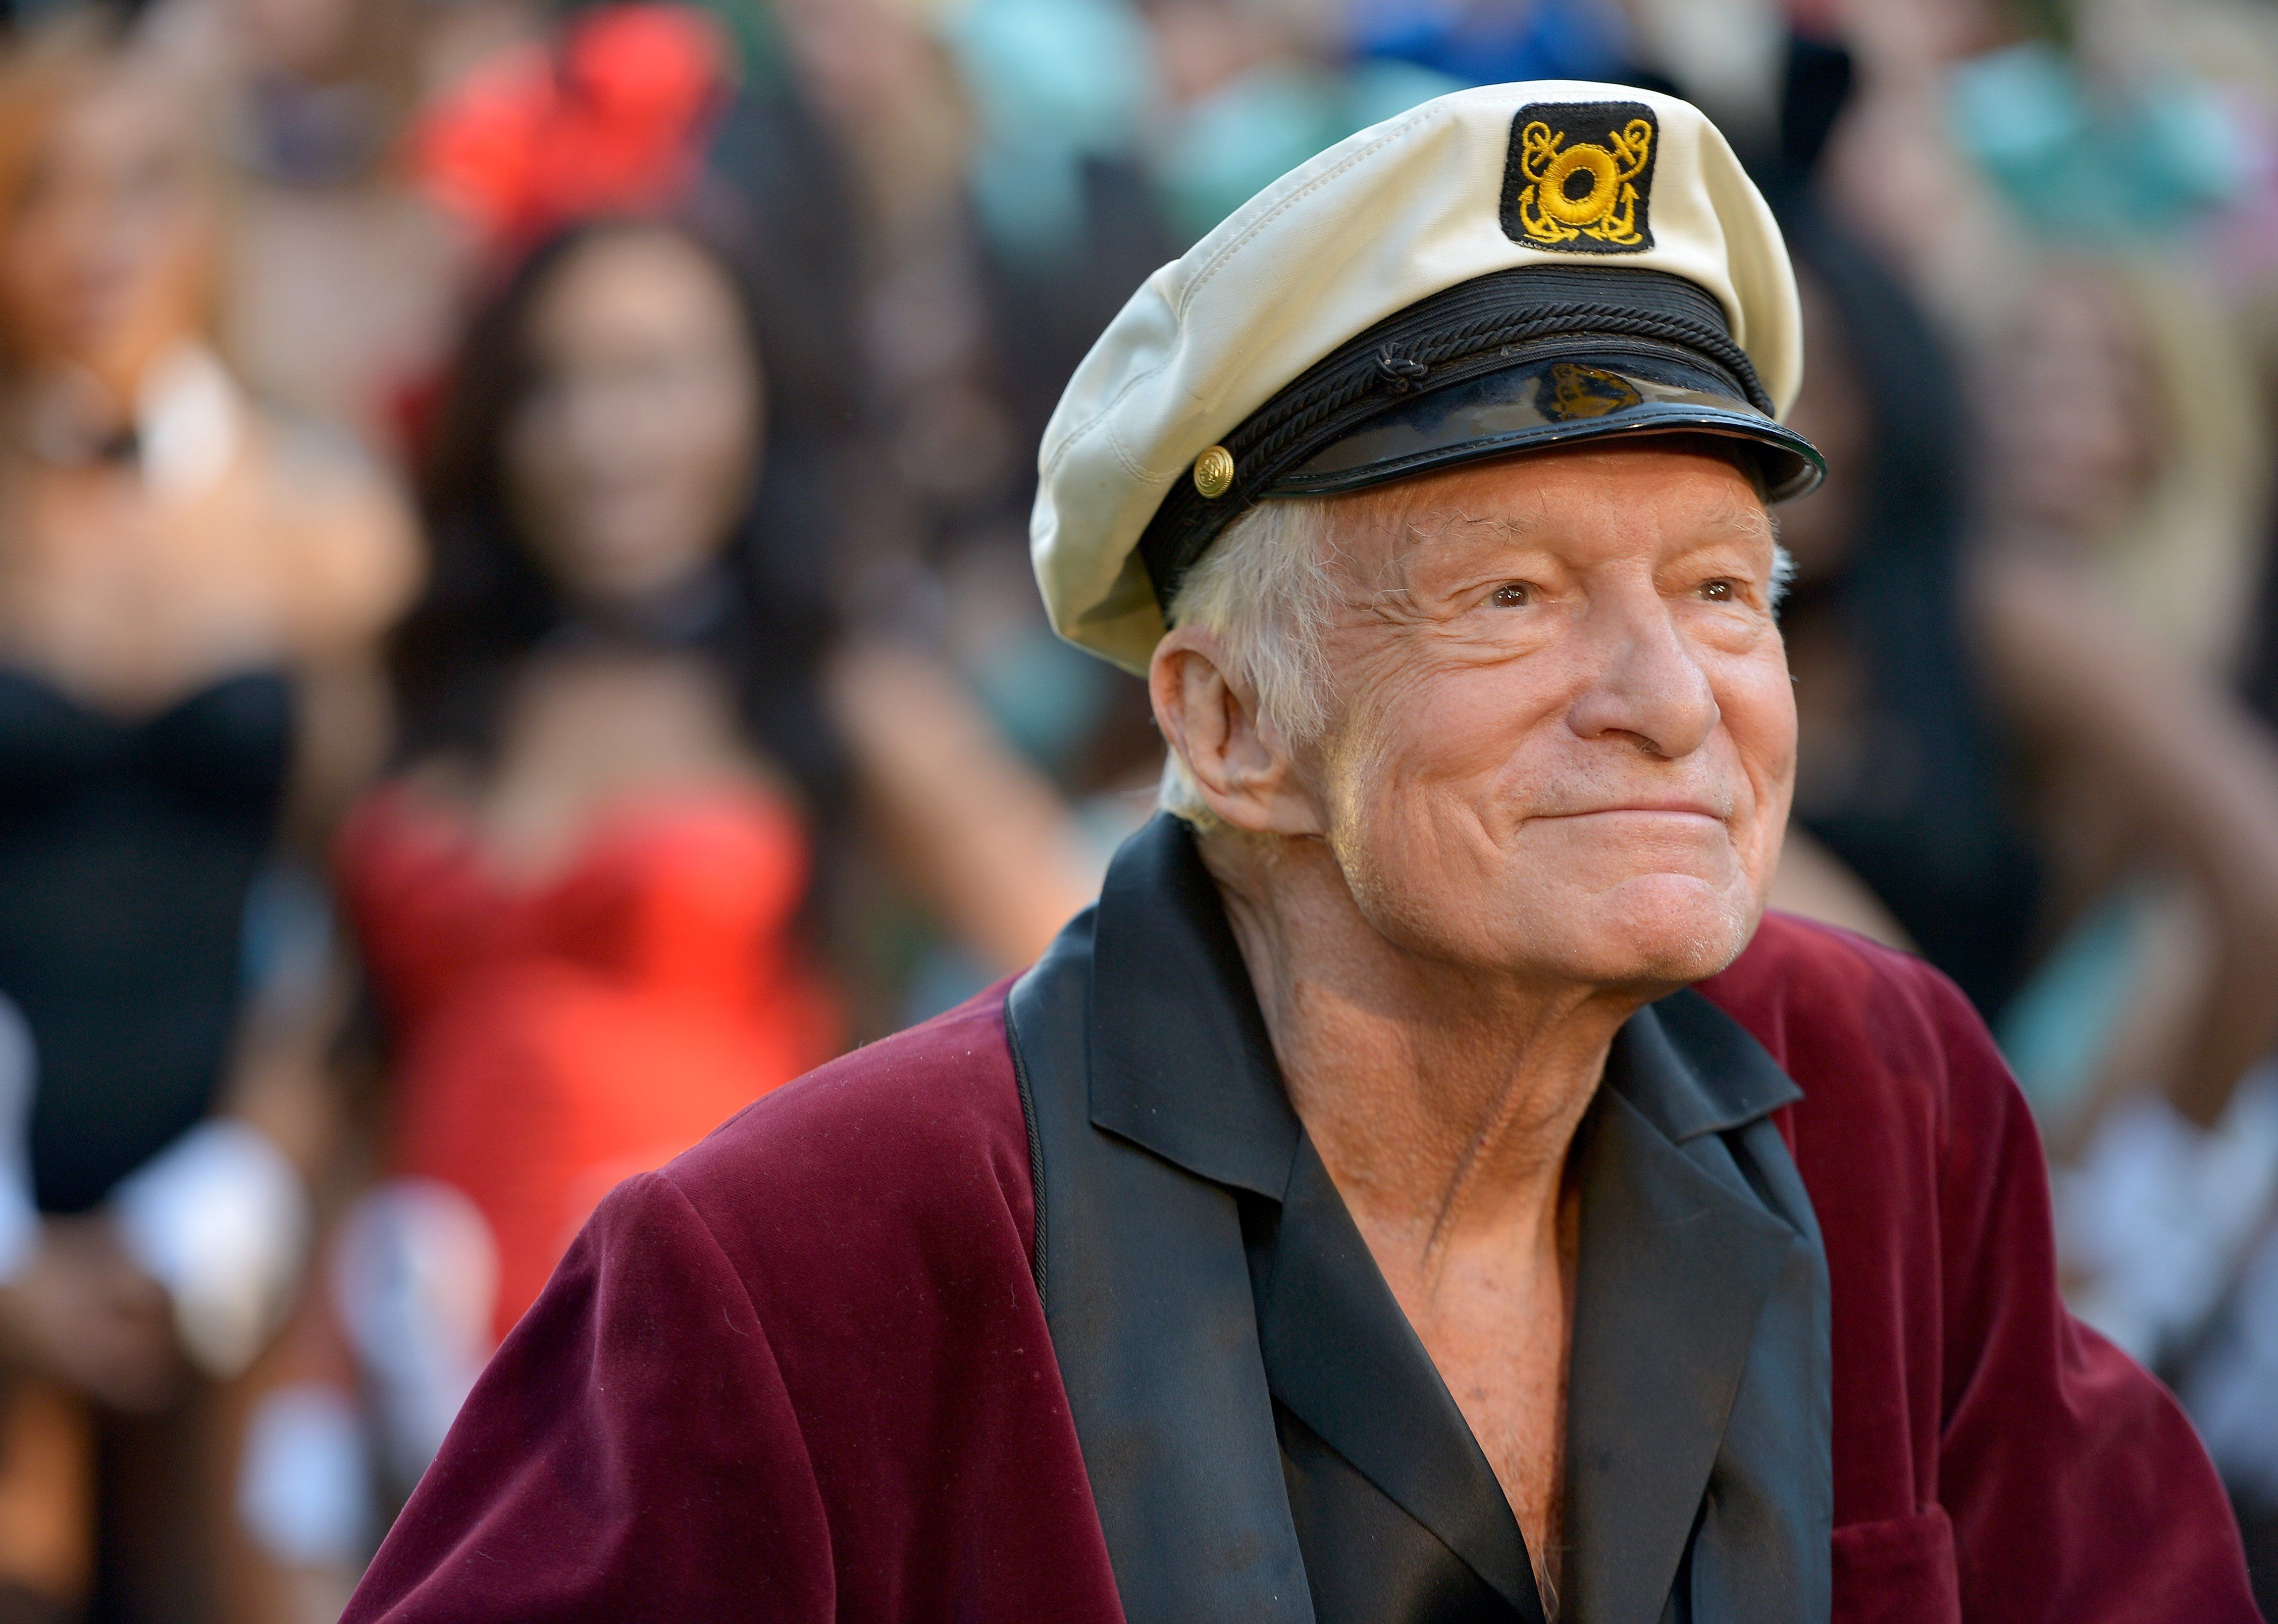 Hugh Hefner poses at Playboy's 60th Anniversary special event